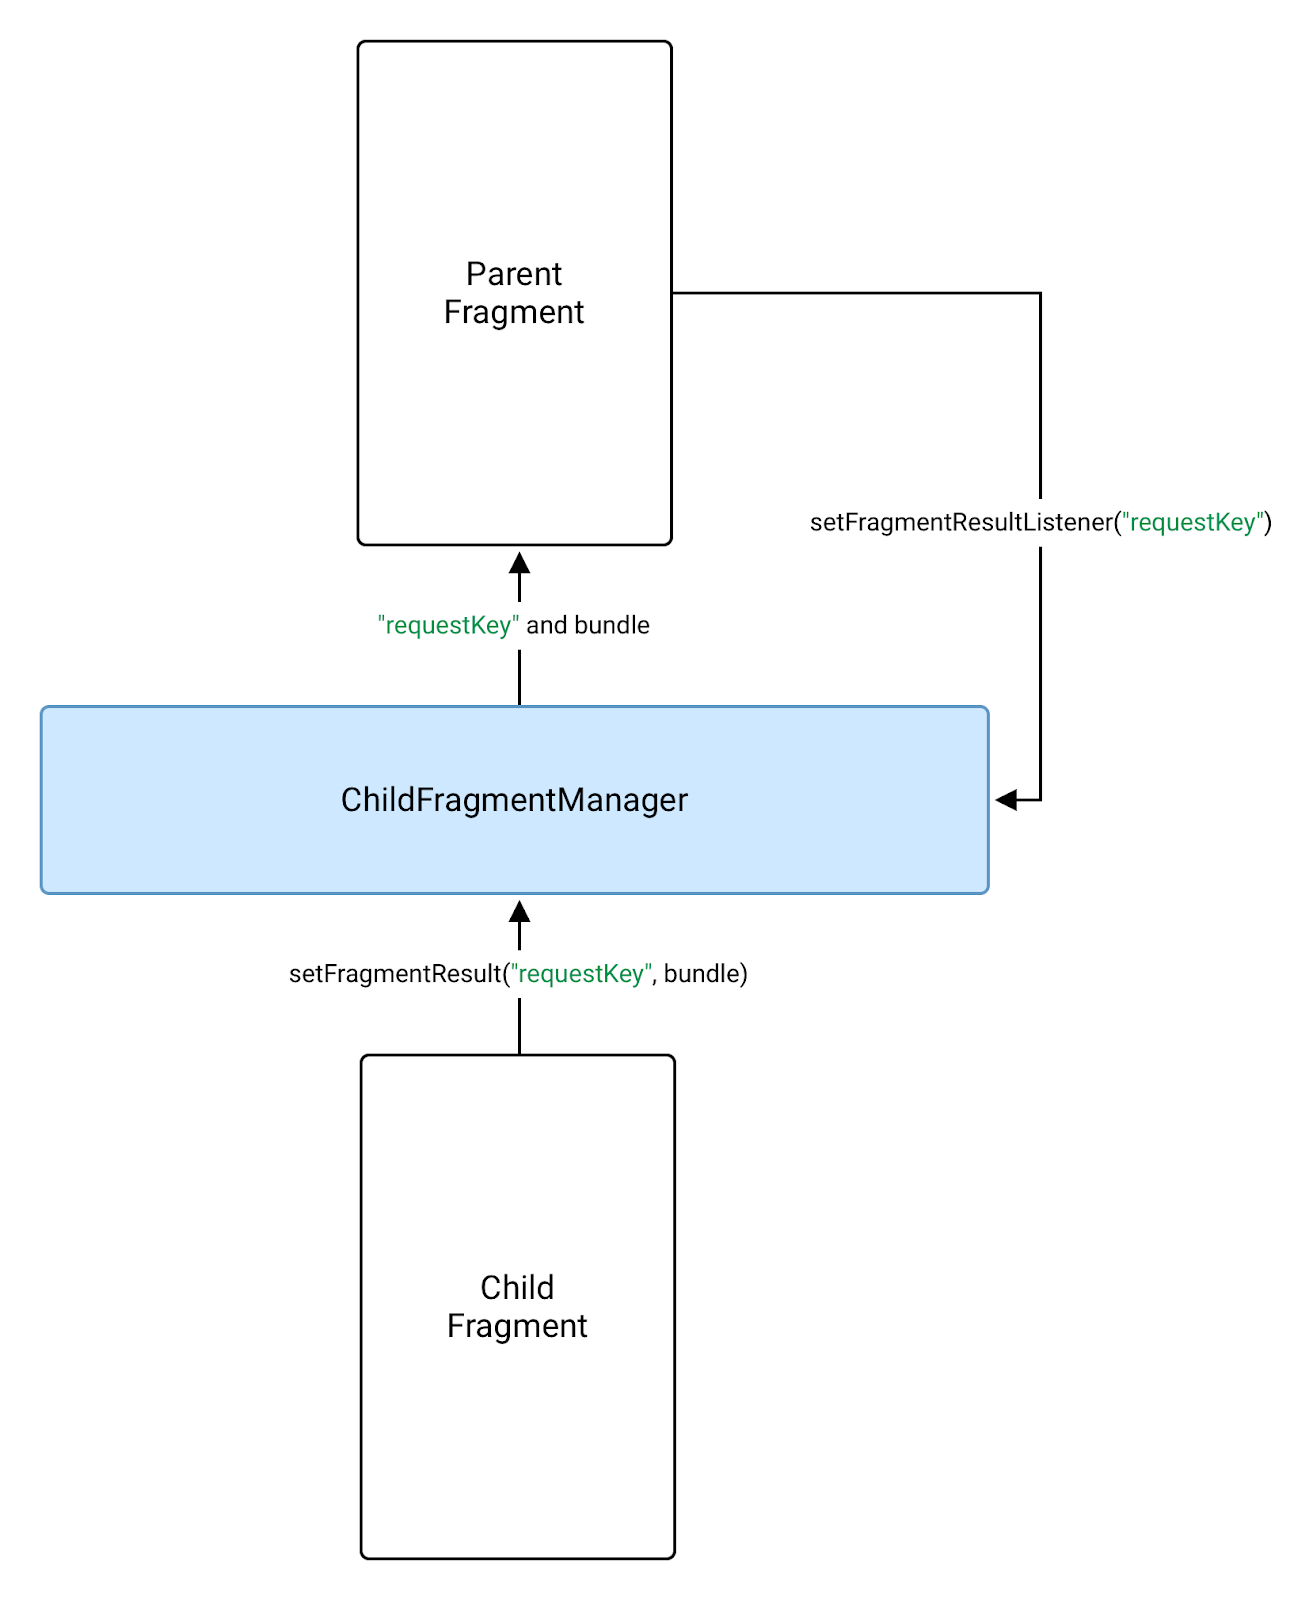 a child fragment can use FragmentManager to send a result             to its parent